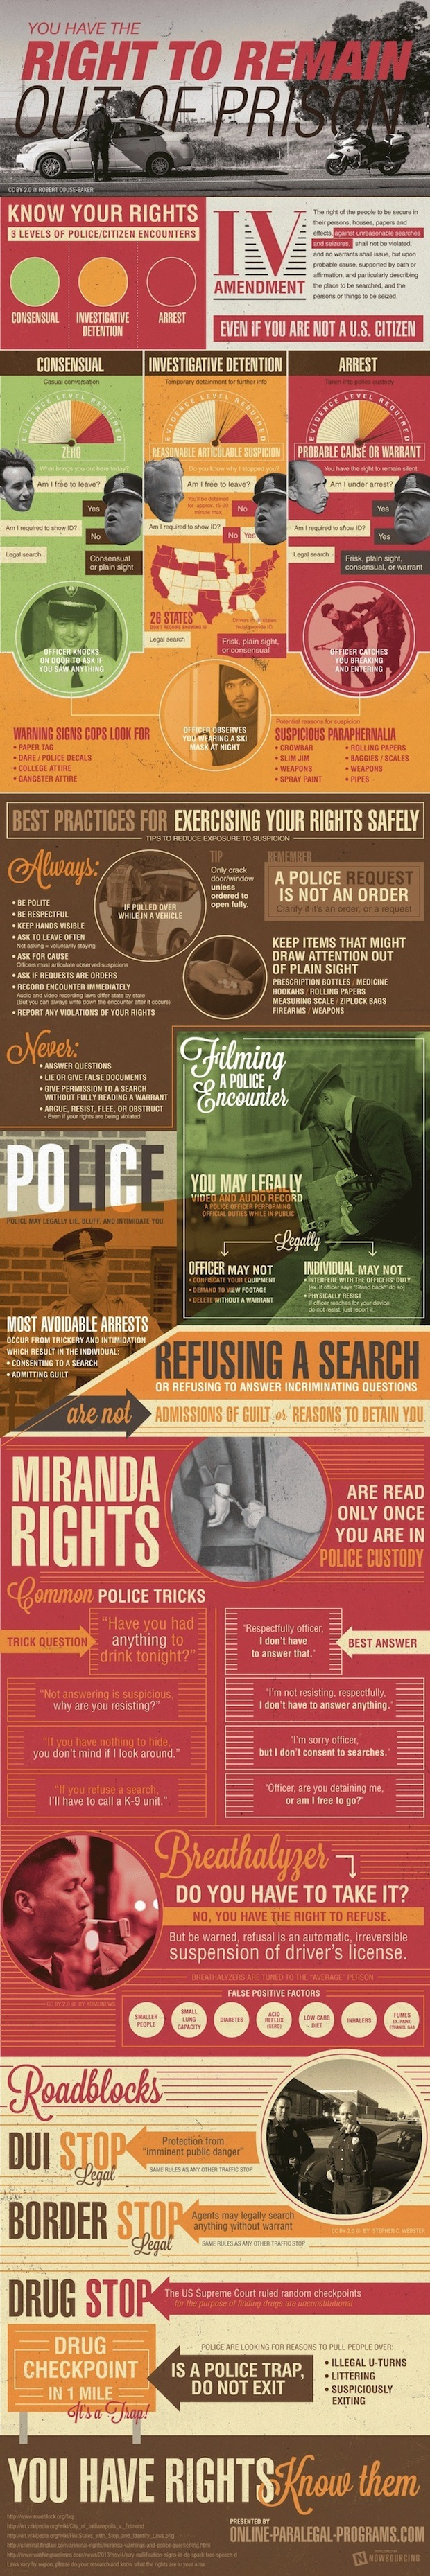 Know Your Rights When Interacting With a Police Officer